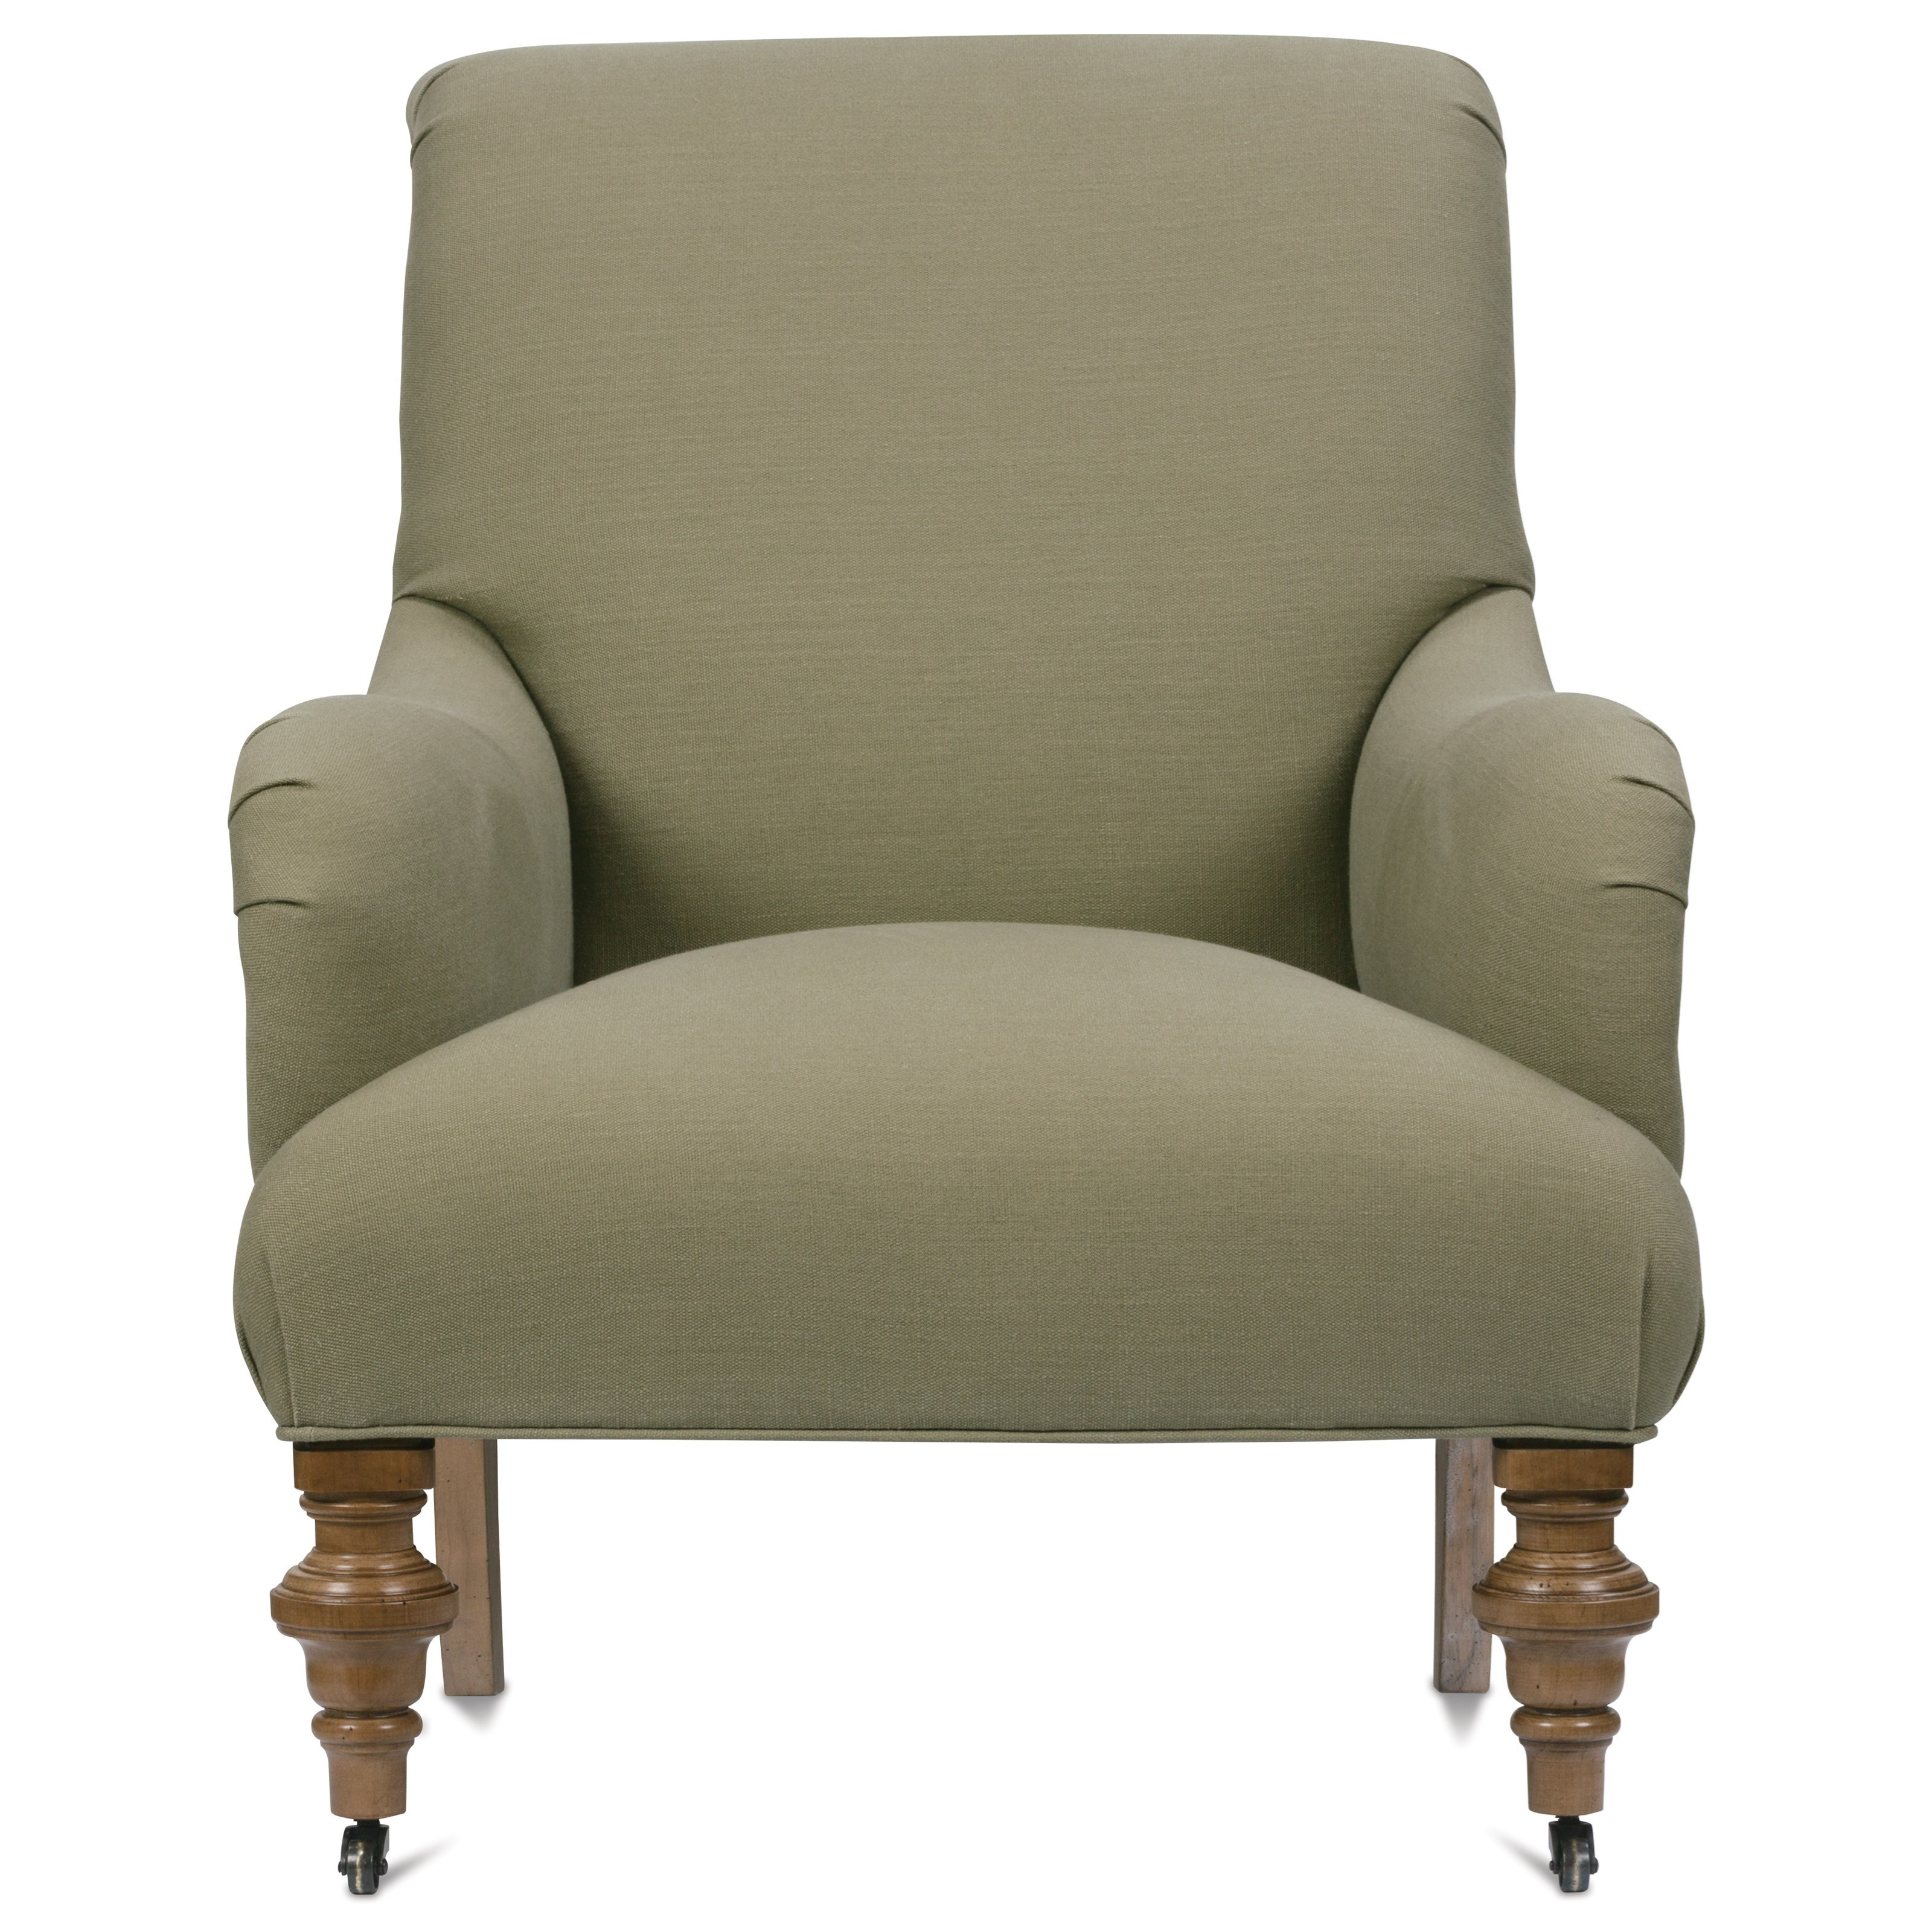 Rowe Chairs And Accents Carlyle Upholstered Chair With